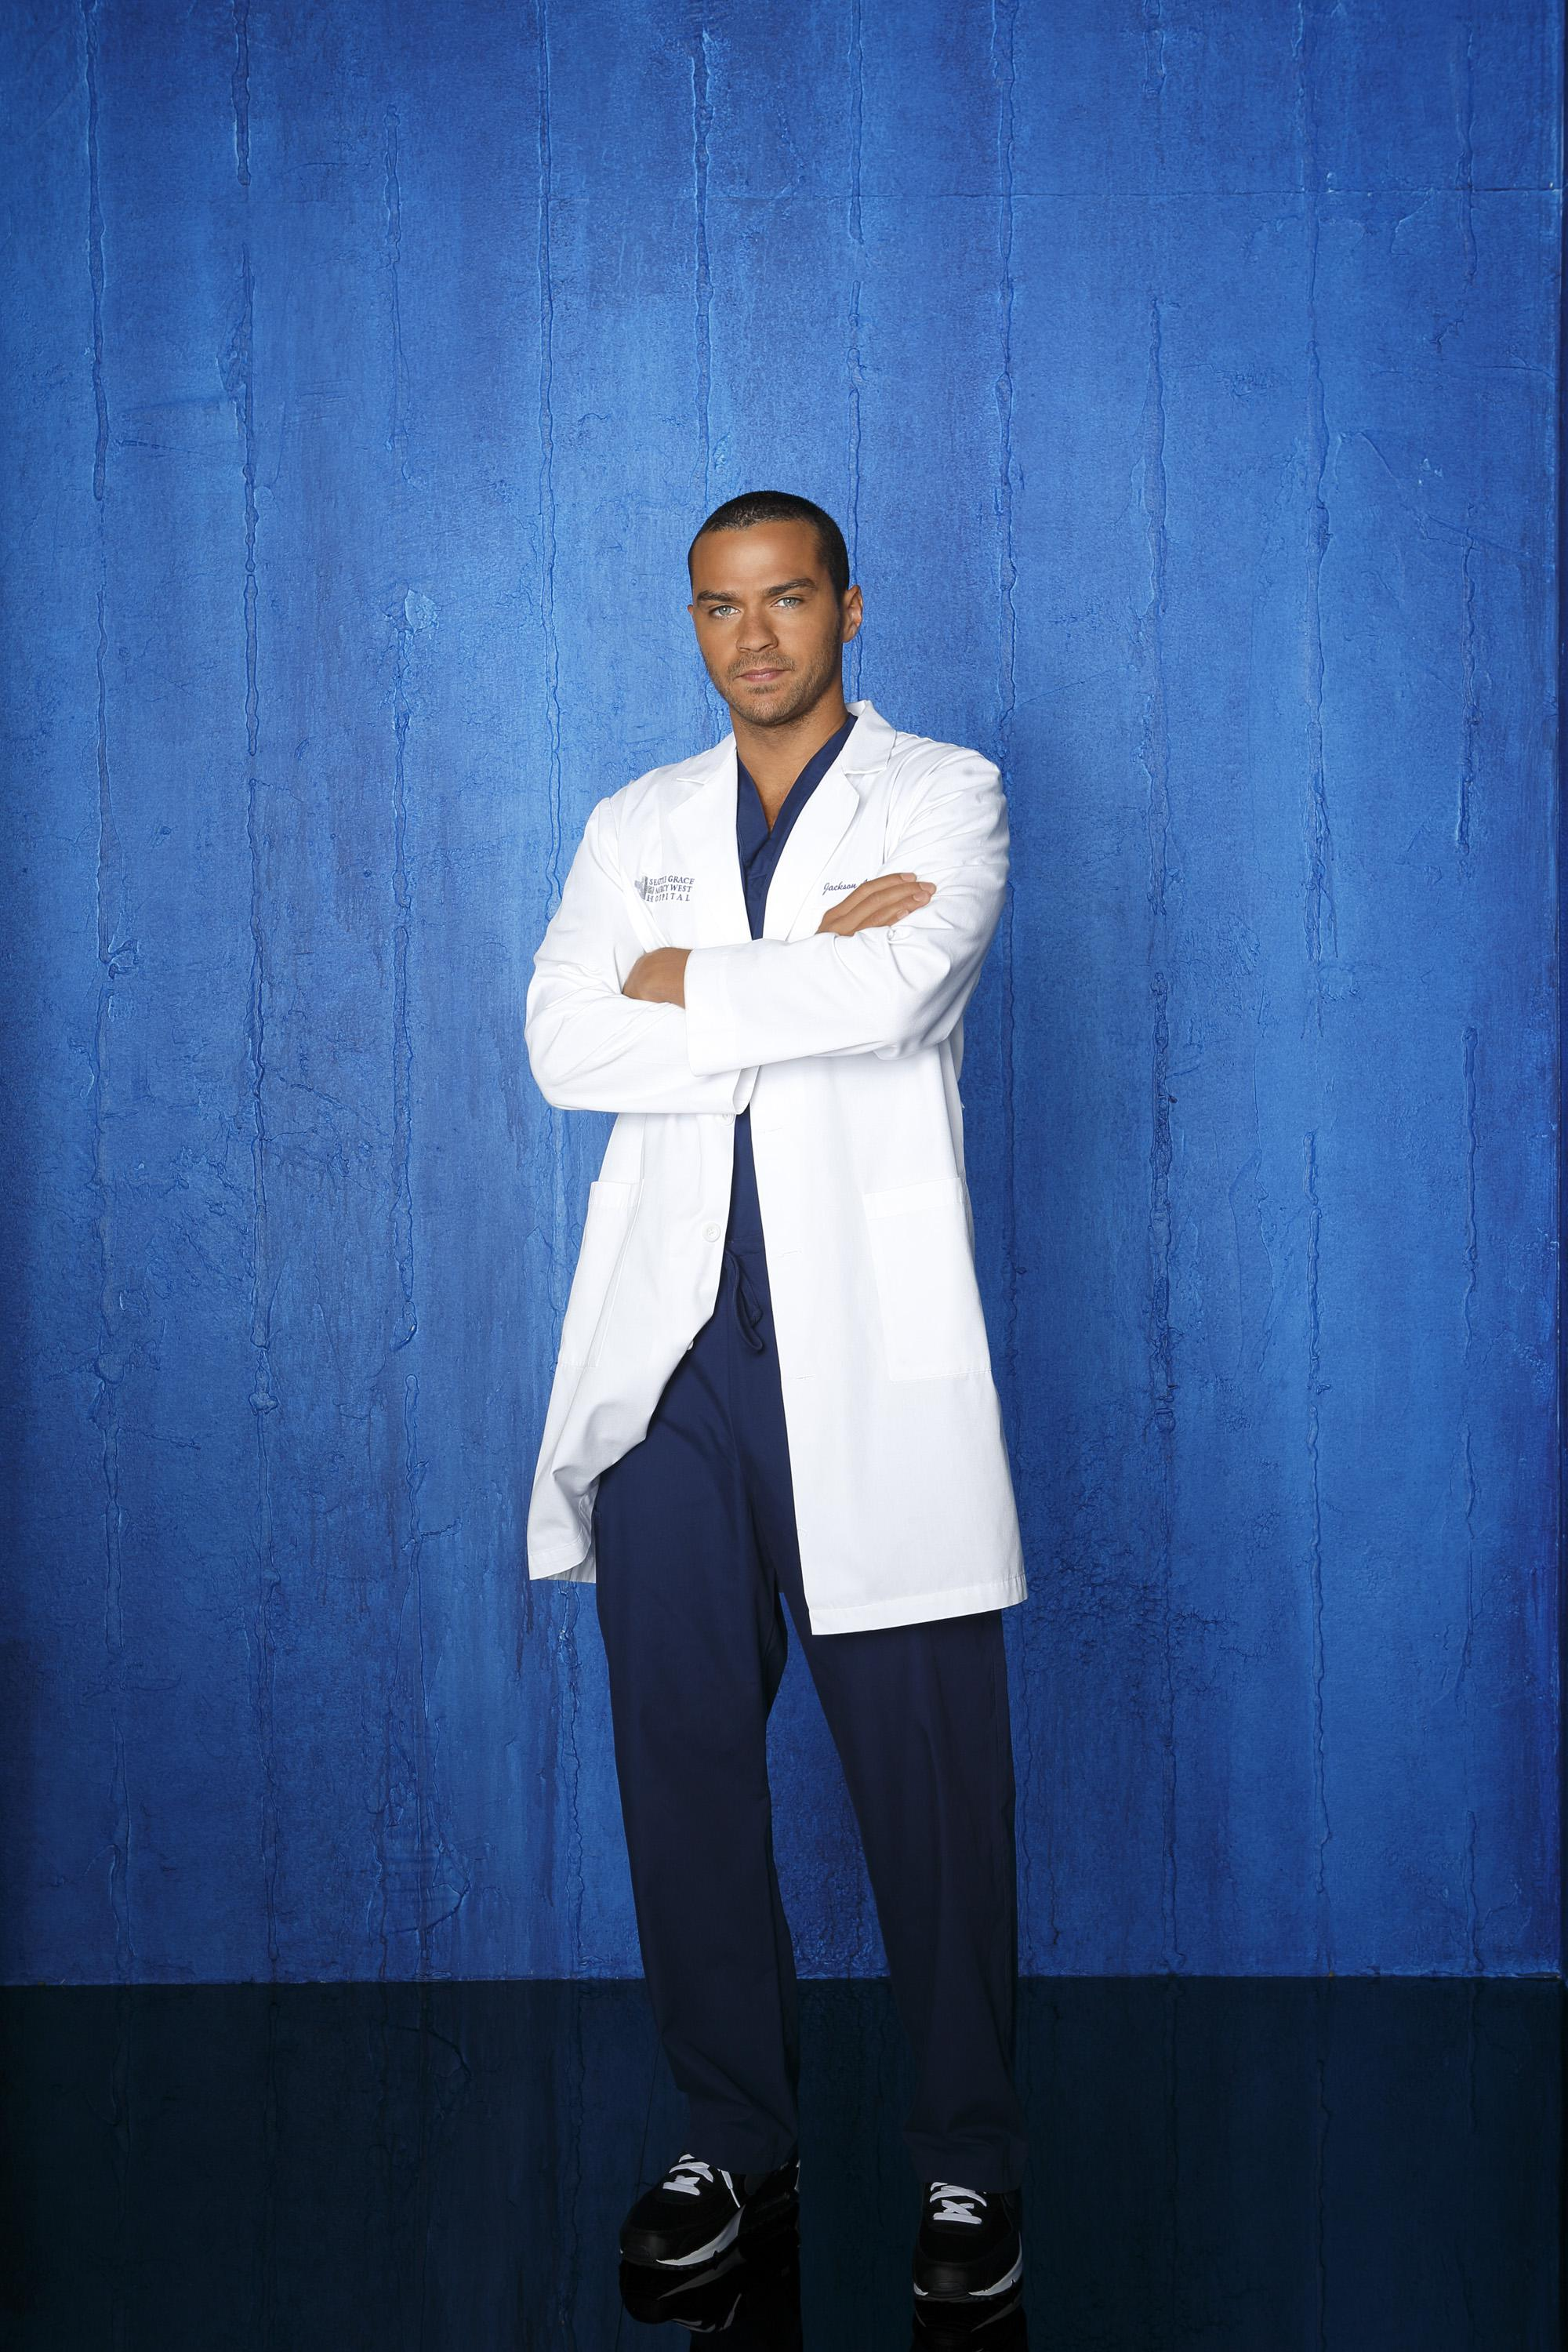 Greys-Anatomy-S09-Jesse-Williams-3-dvdbash | DVDbash